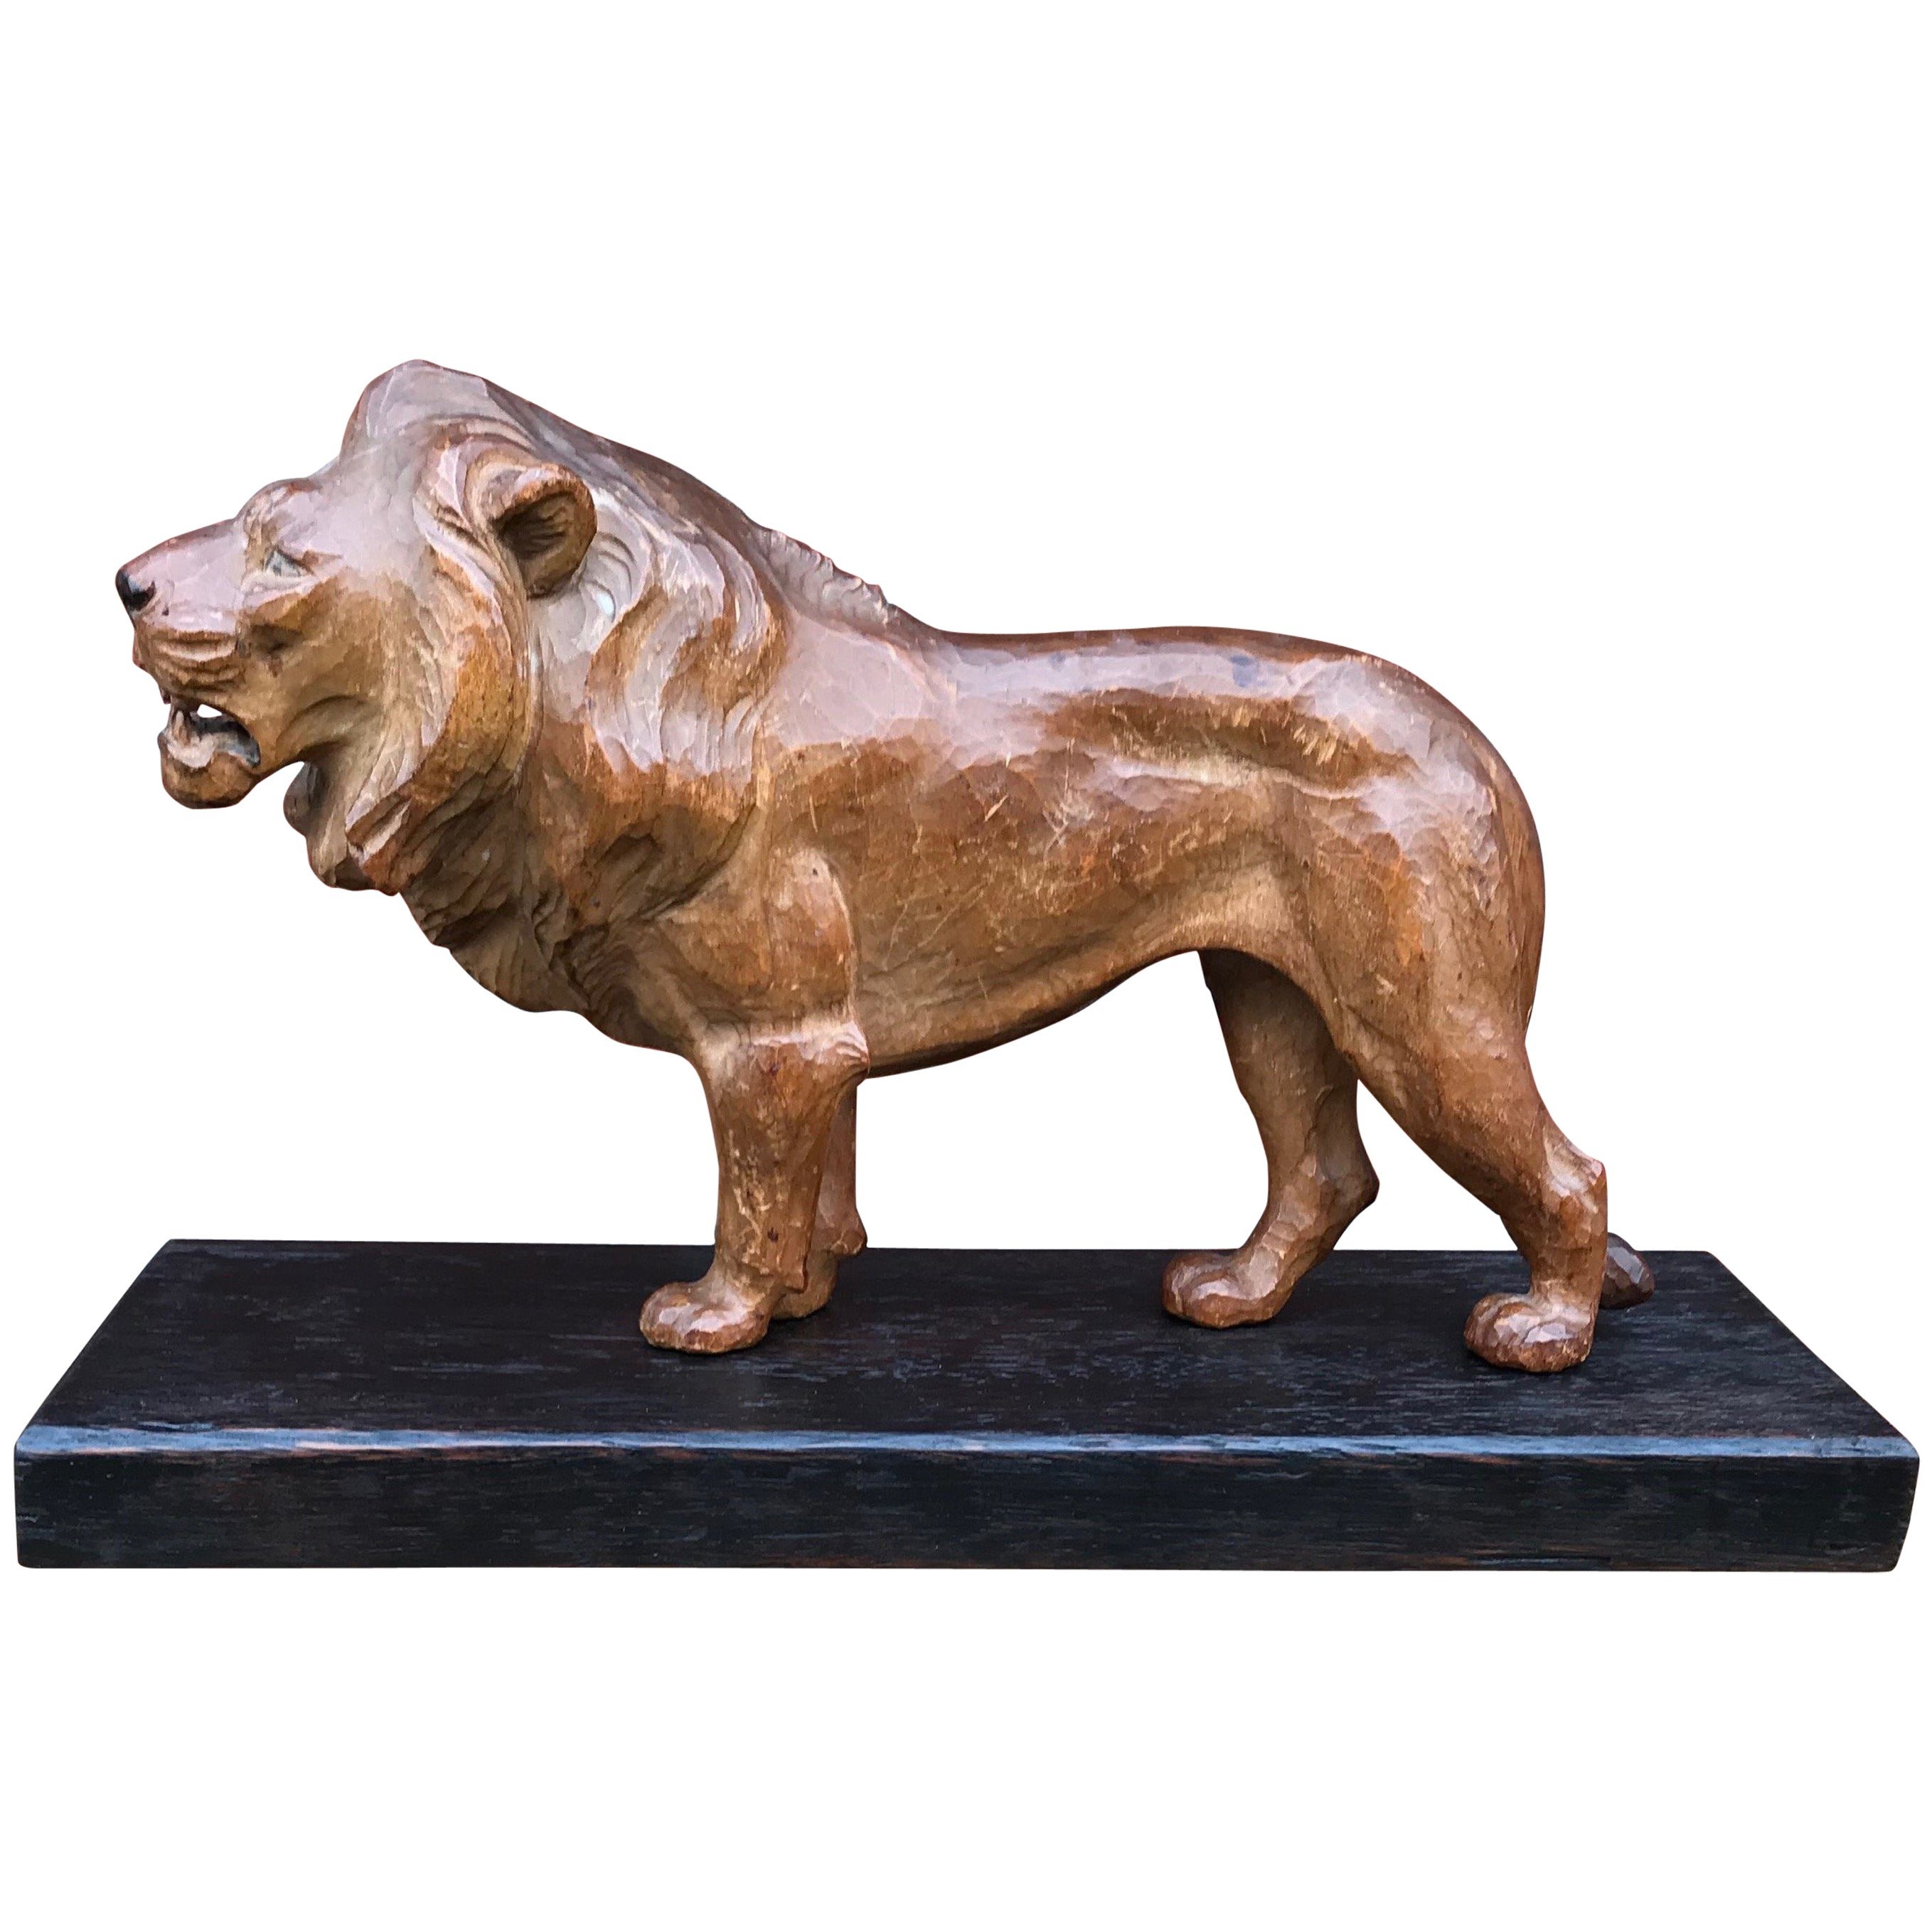 Early 20th Century Hand-Carved Lion Sculpture Statue on Base, King of the Jungle